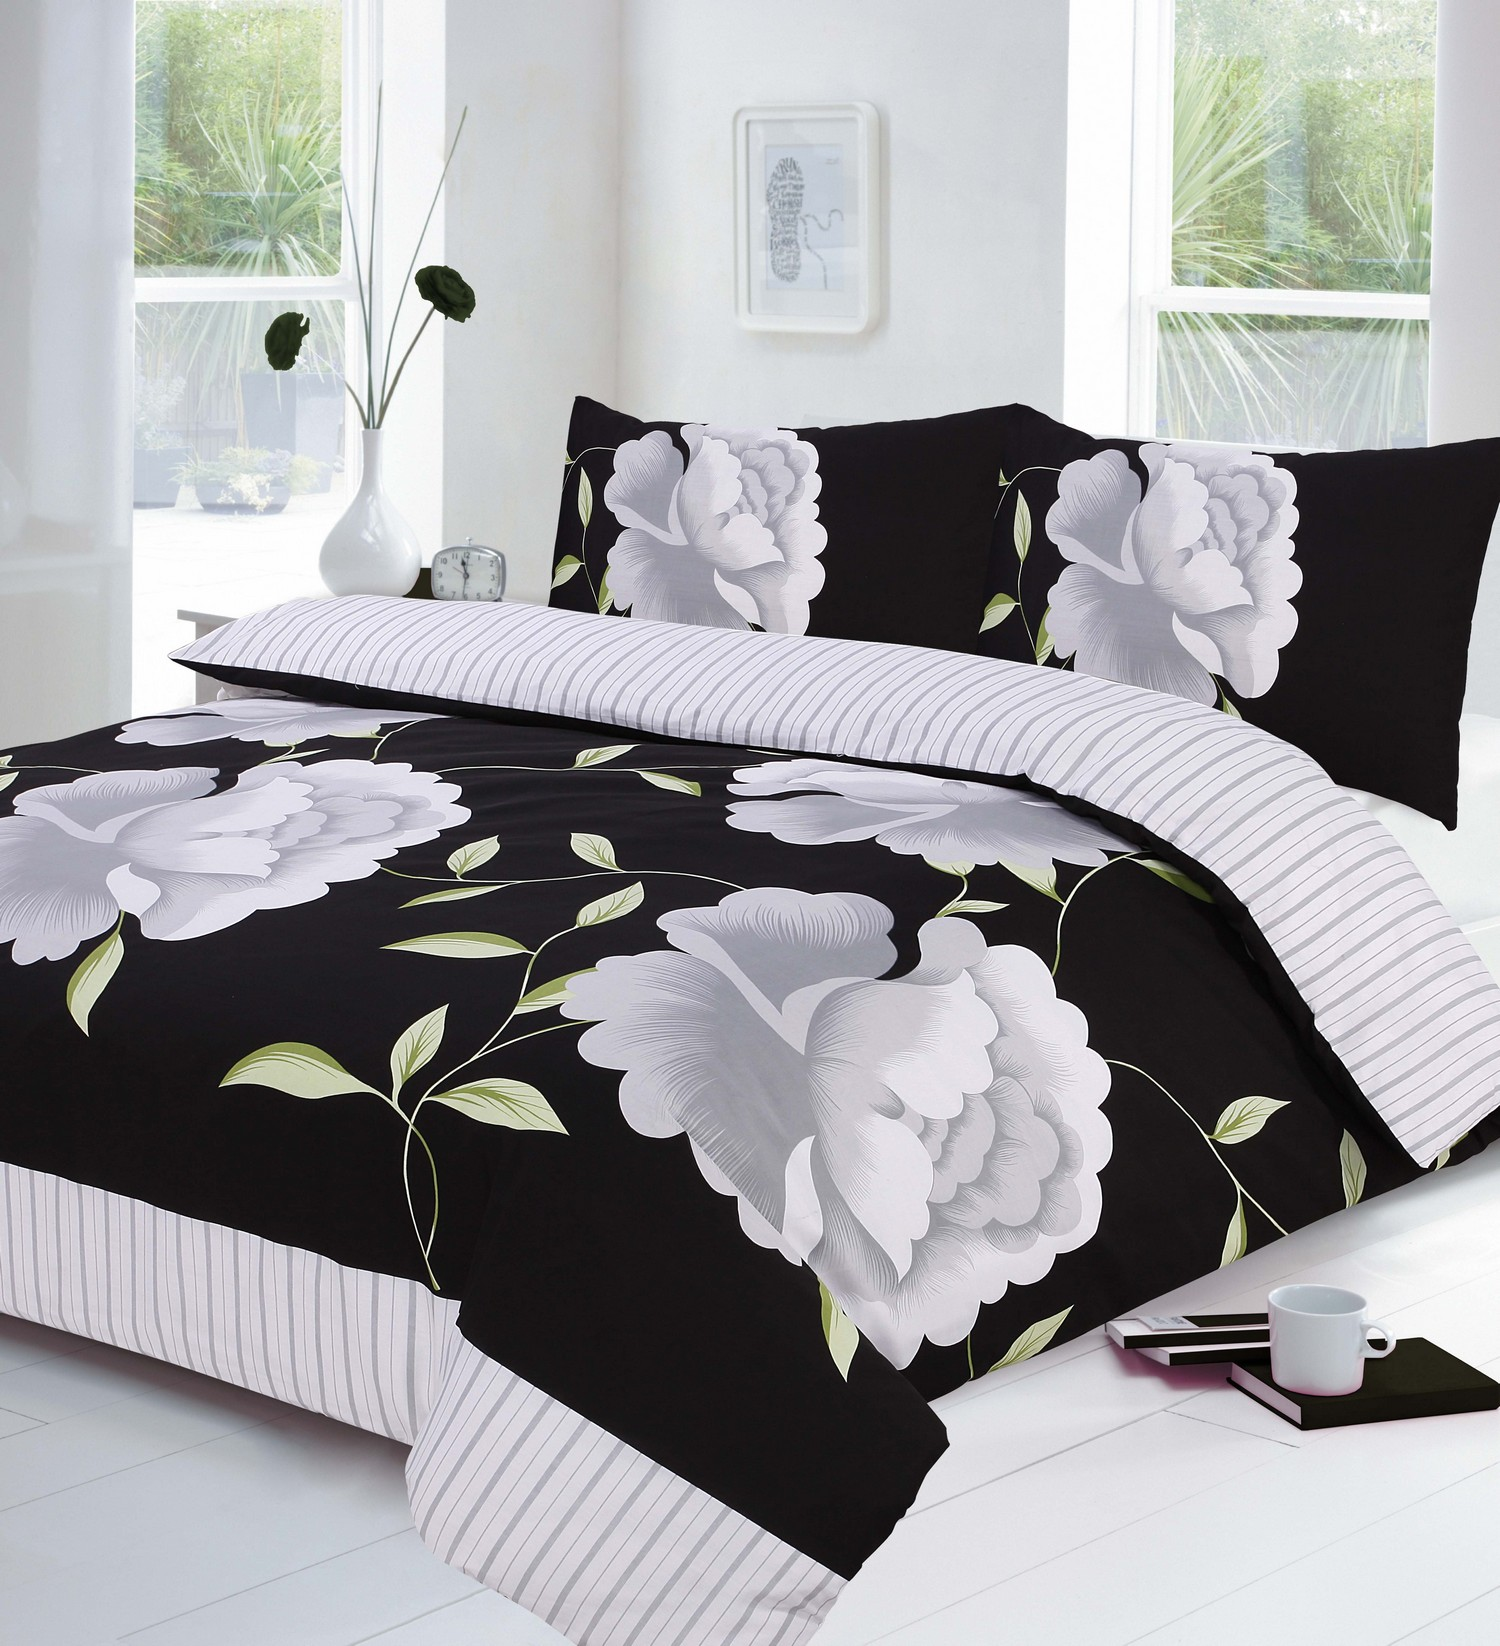 Black White And Grey Duvet Covers Floral Black Grey And White Duvet Quilt Cover And P Case